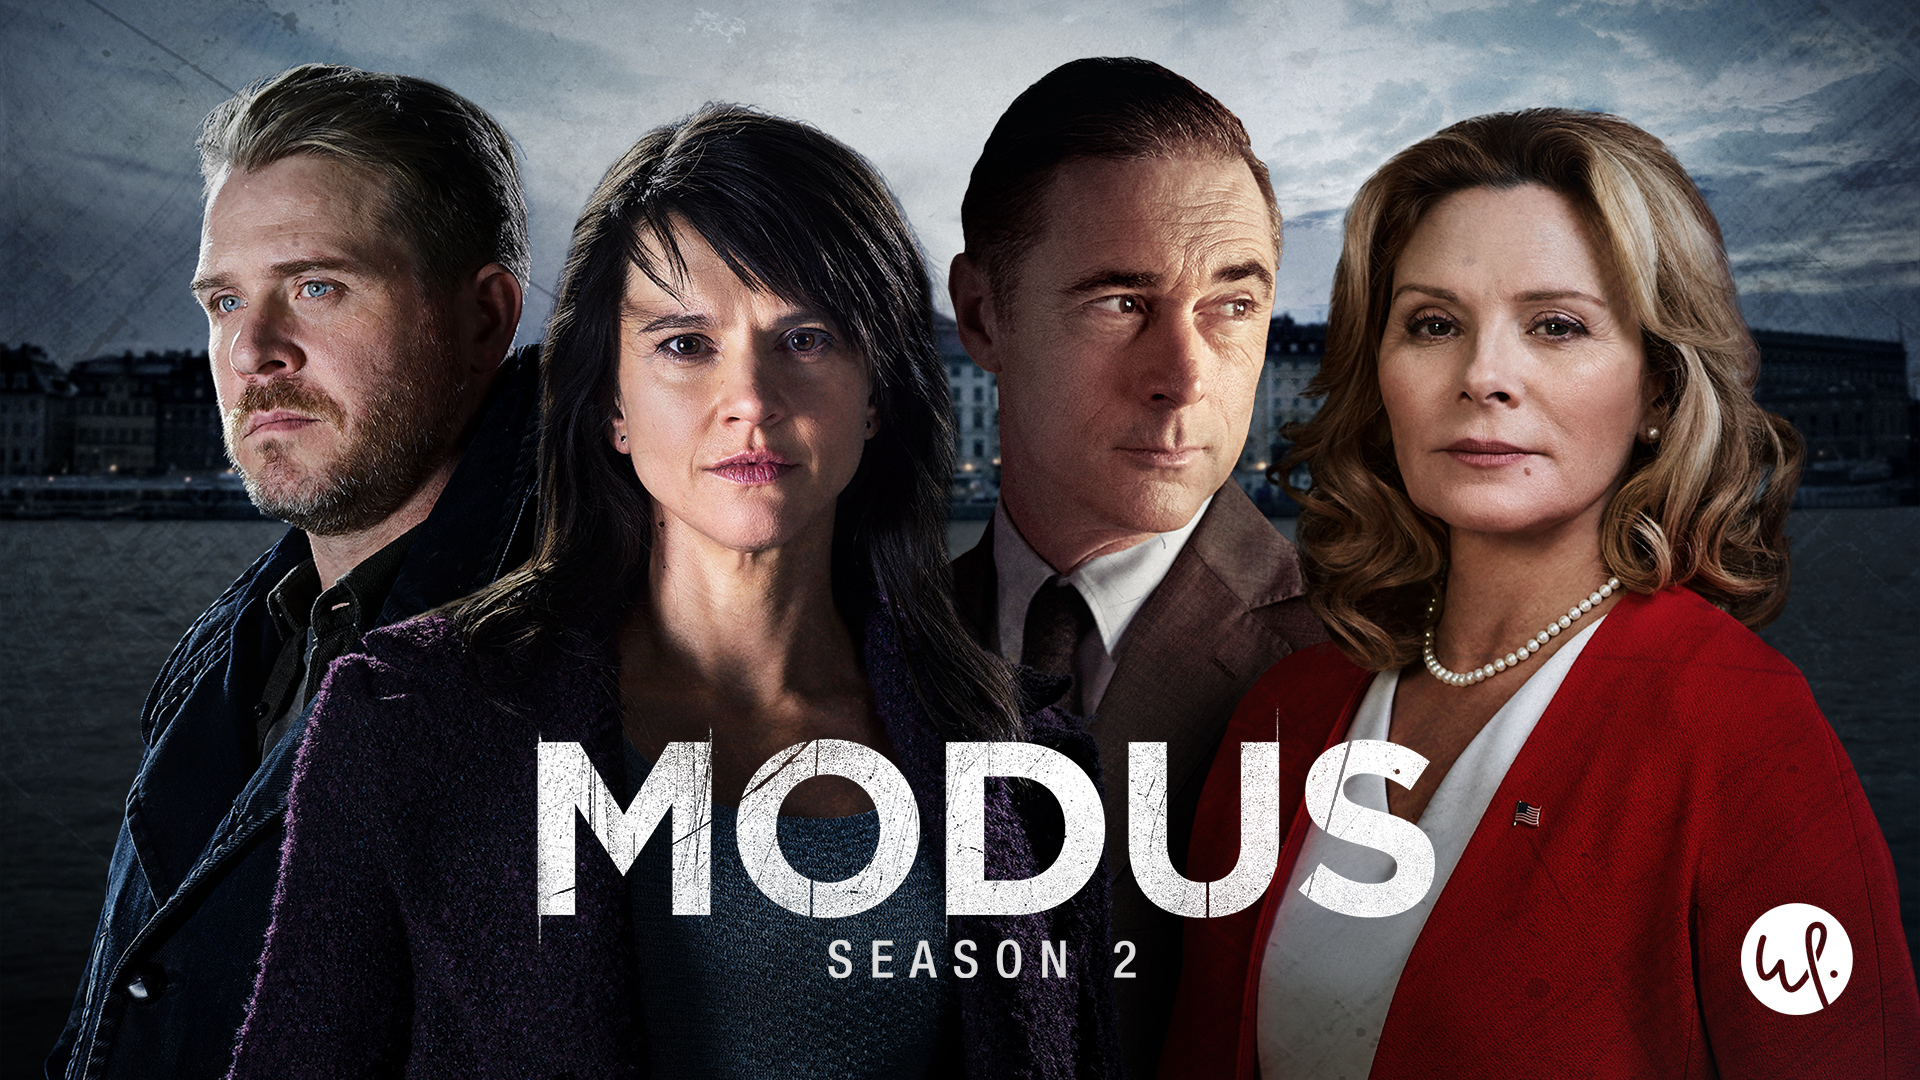 Walter Presents - Modus: Season 2